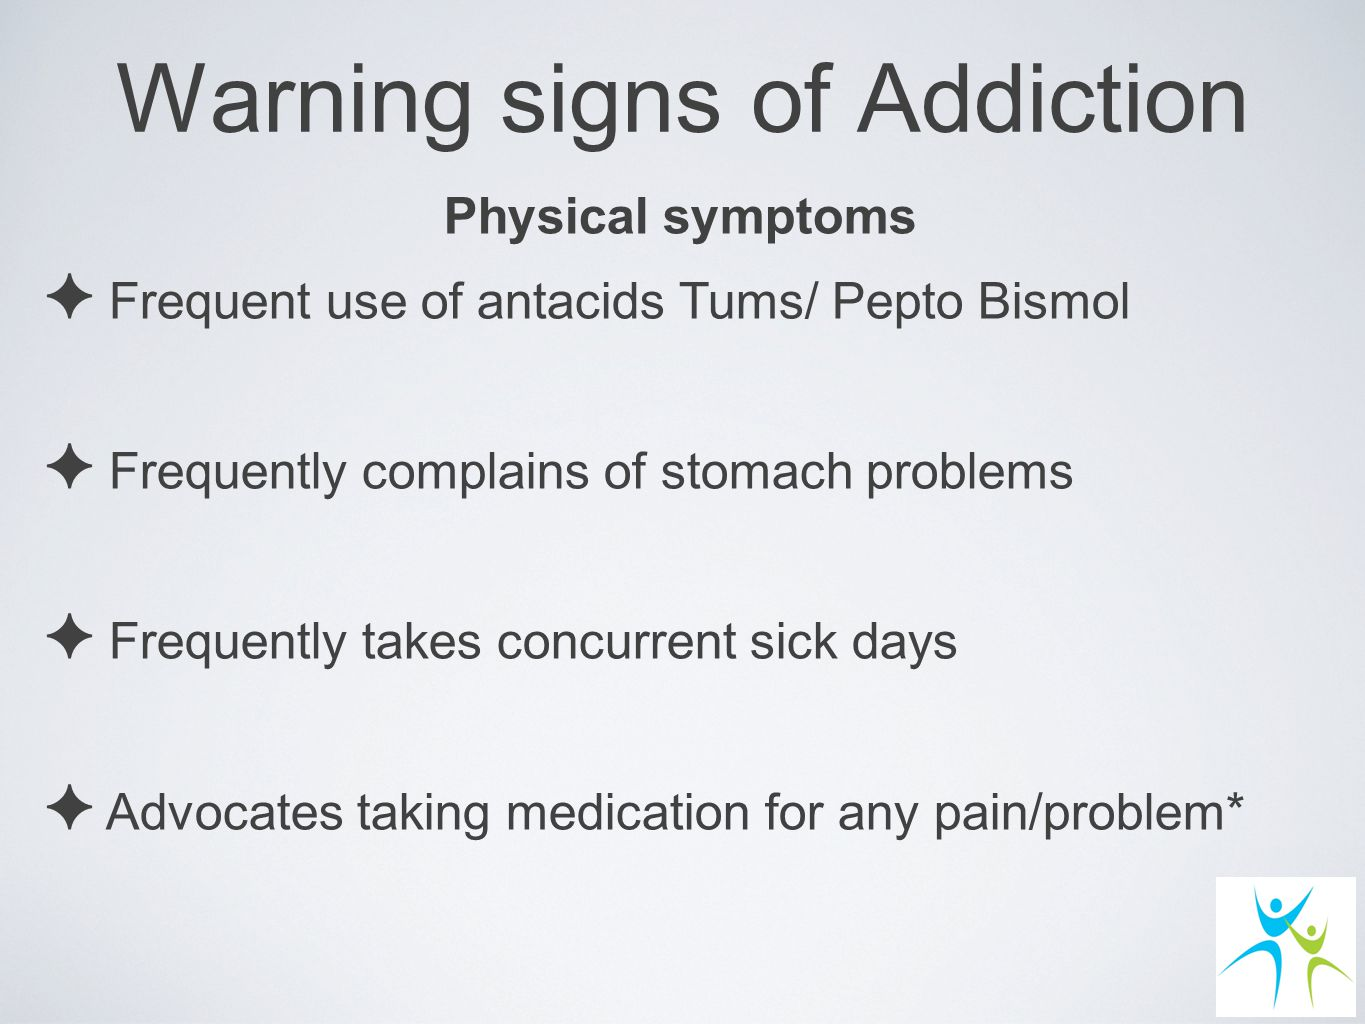 Warning signs of Addiction Physical symptoms ✦ Frequent use of antacids Tums/ Pepto Bismol ✦ Frequently complains of stomach problems ✦ Frequently takes concurrent sick days ✦ Advocates taking medication for any pain/problem*